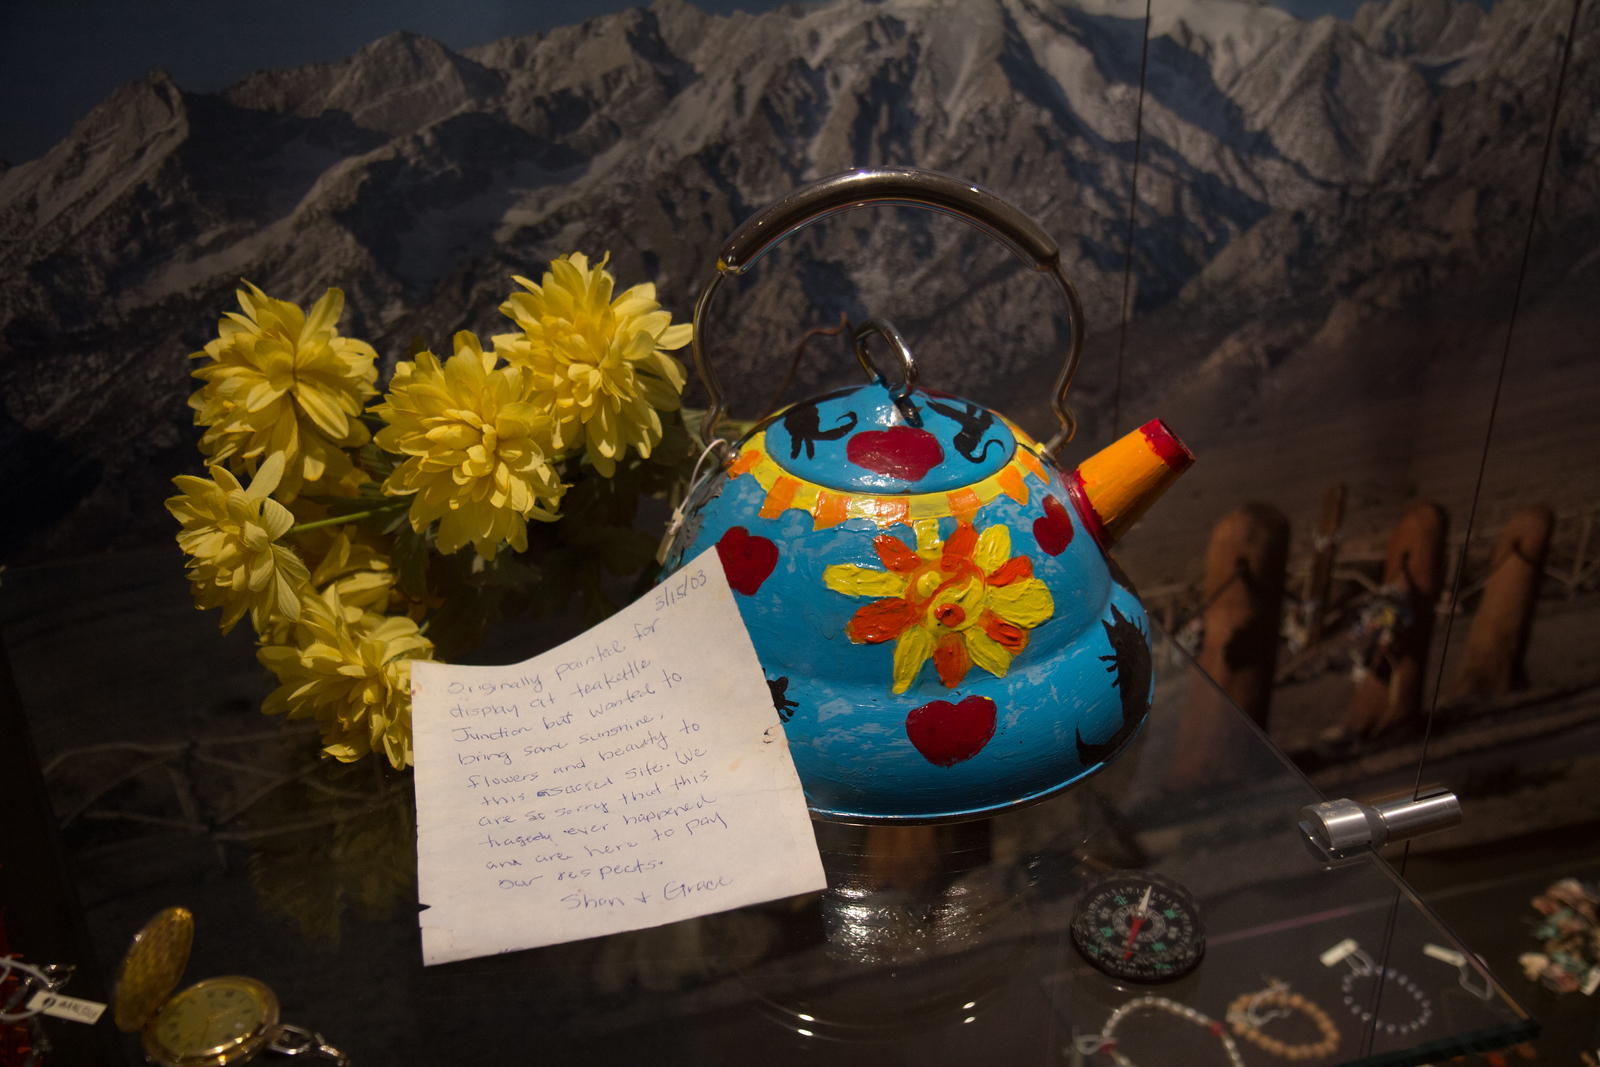 tea kettle from Manzanar cemetery